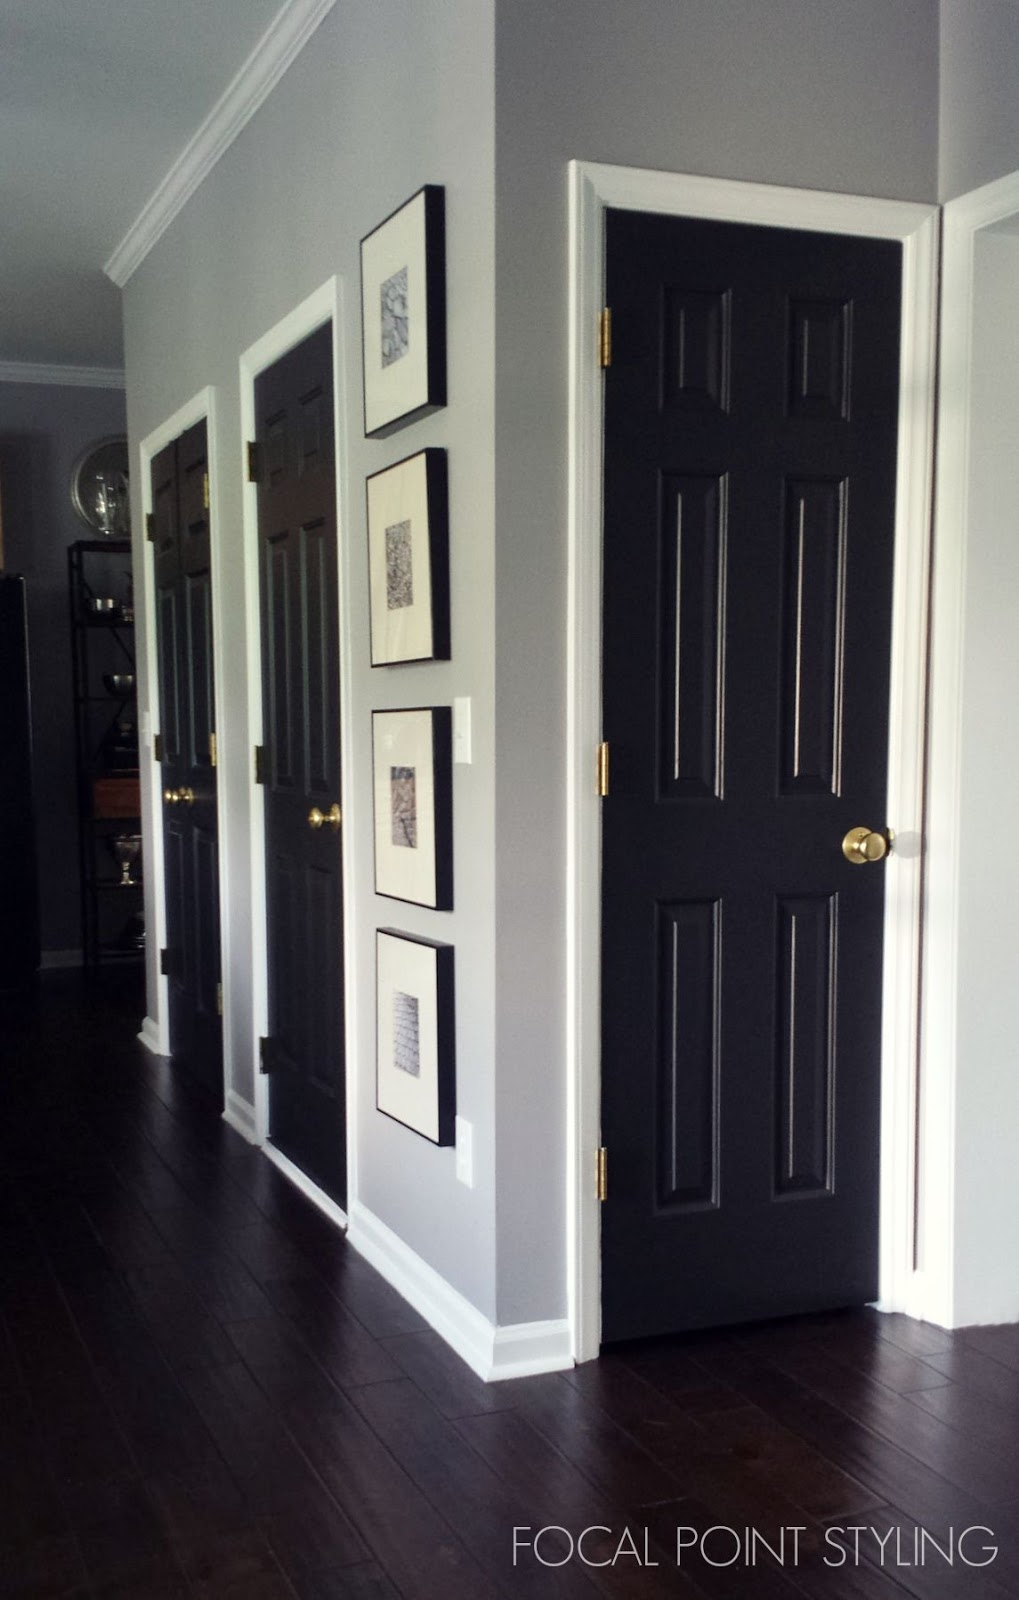 Le Meilleur Focal Point Styling How To Paint Interior Doors Black Ce Mois Ci